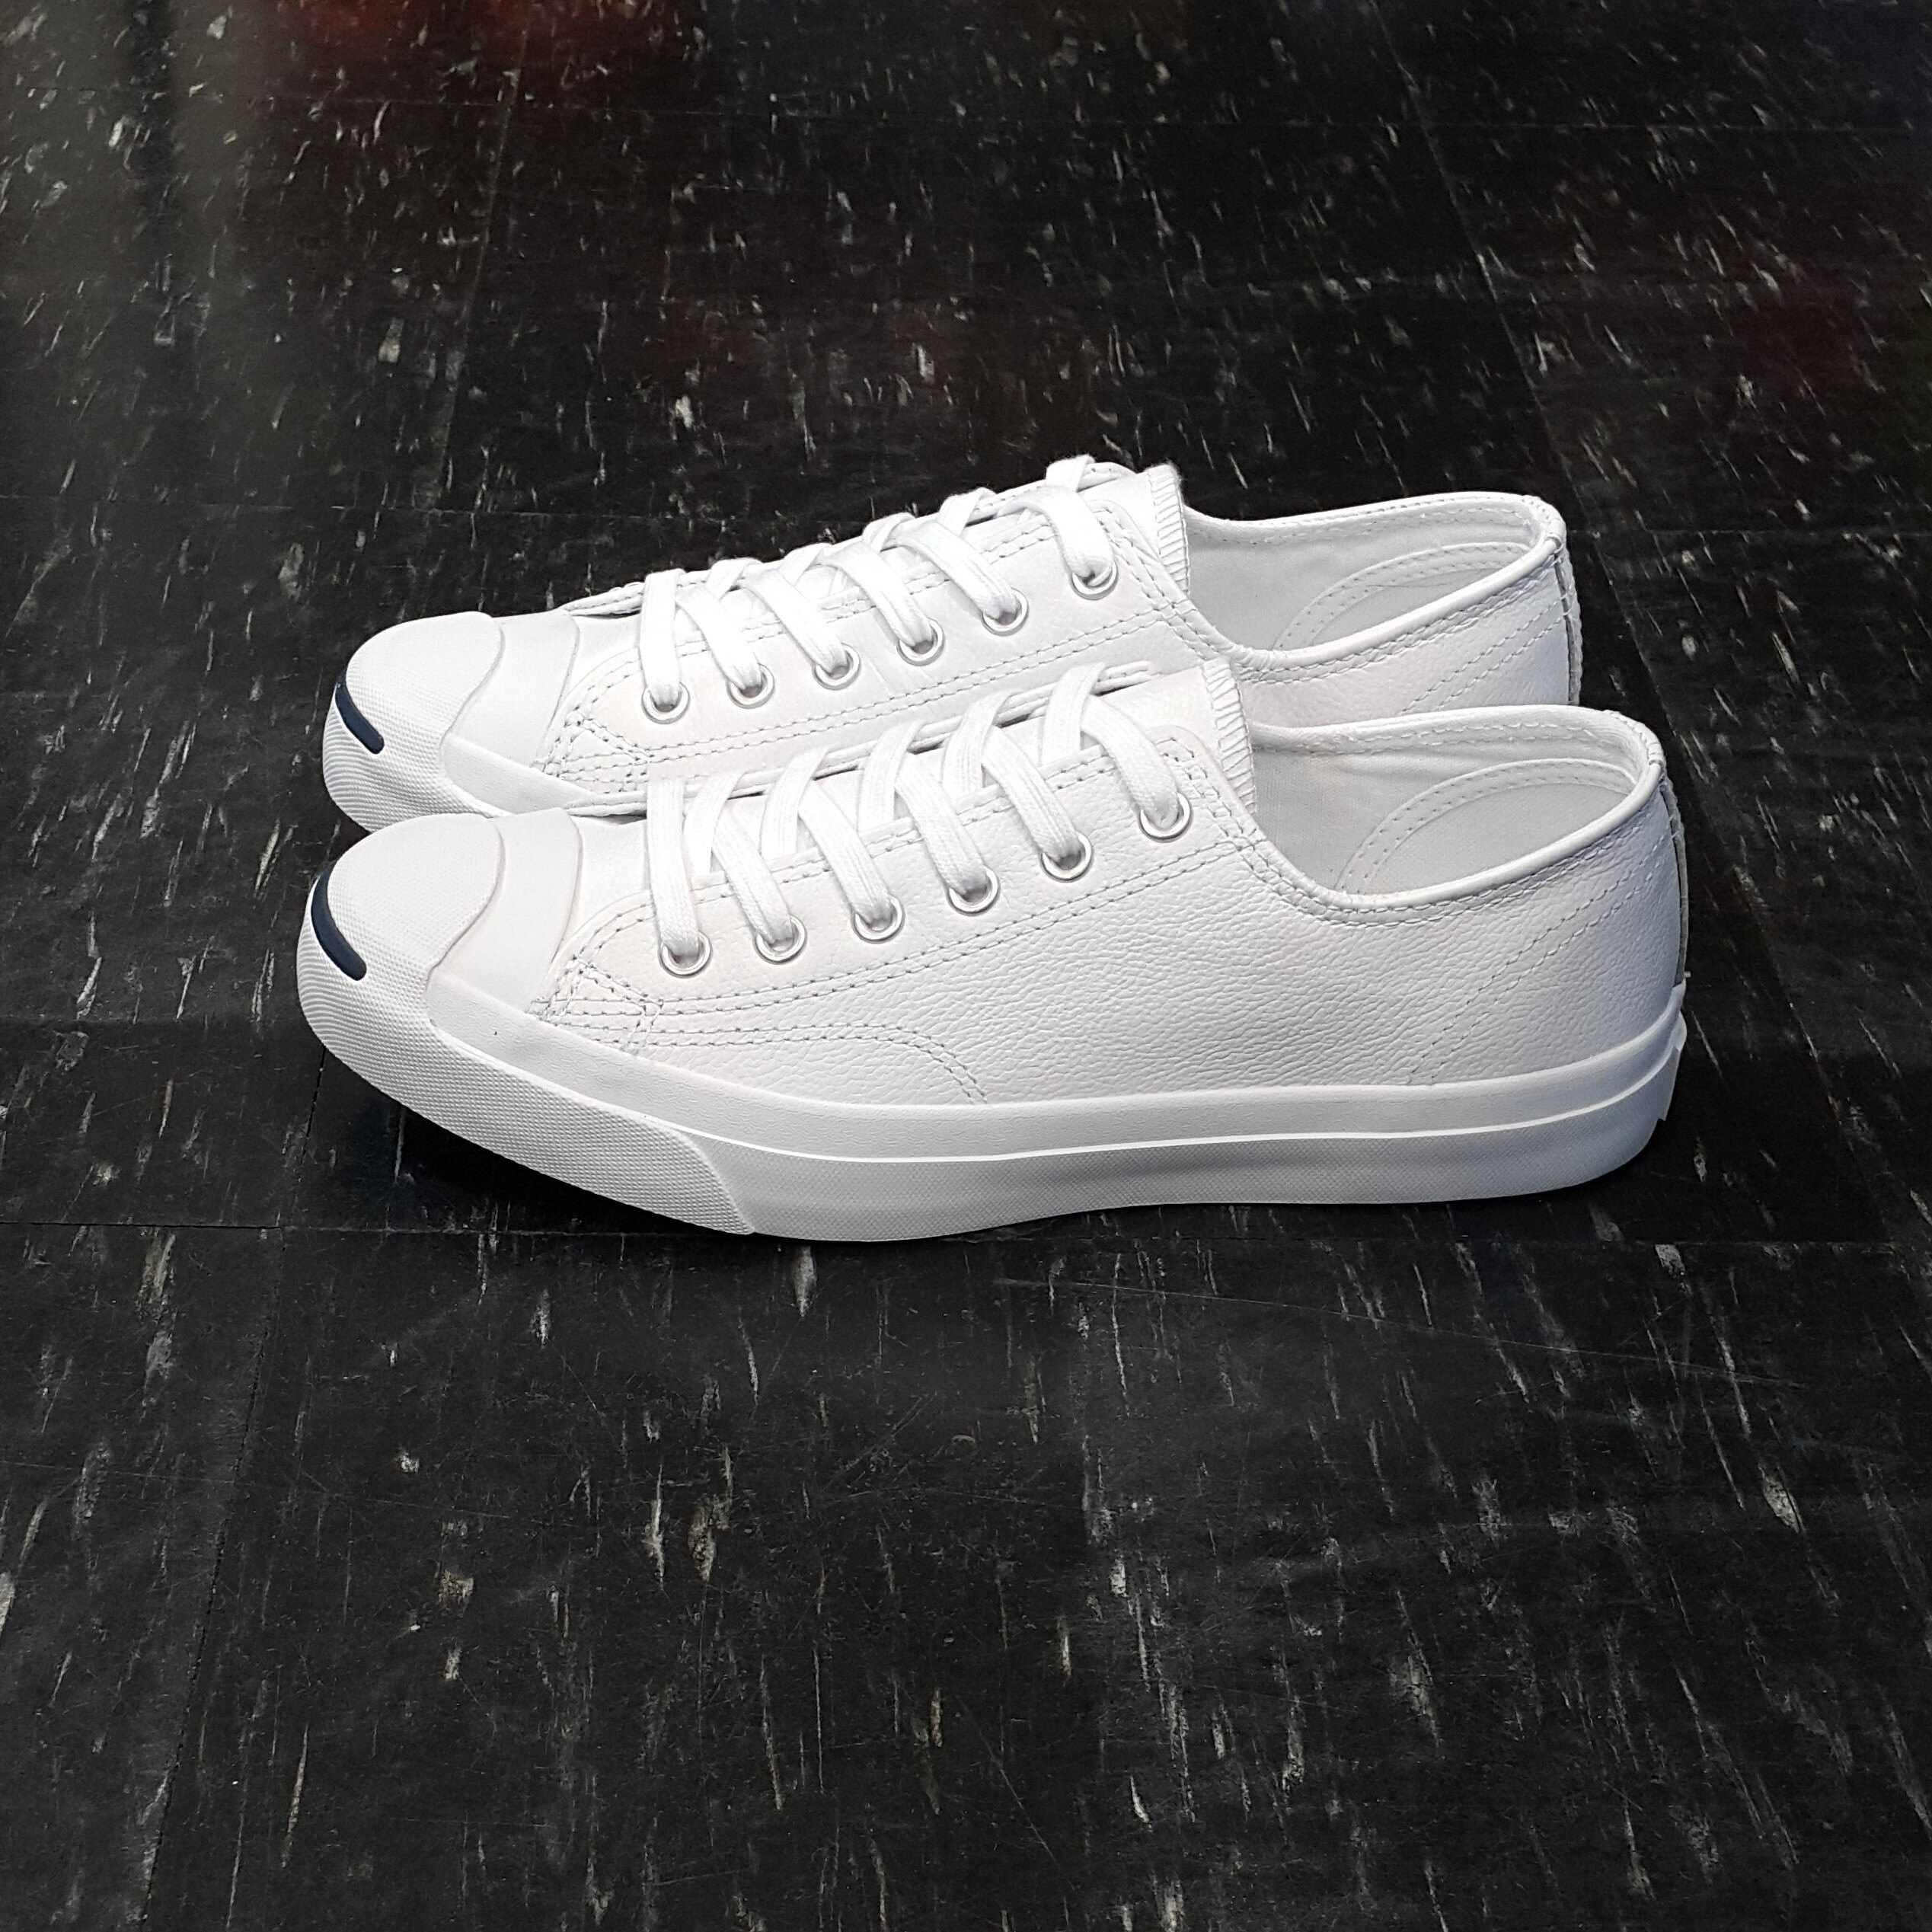 Converse Jack Purcell Leather 開口笑 基本款 白色 全白 皮革 荔枝皮 低筒 經典款 1S961